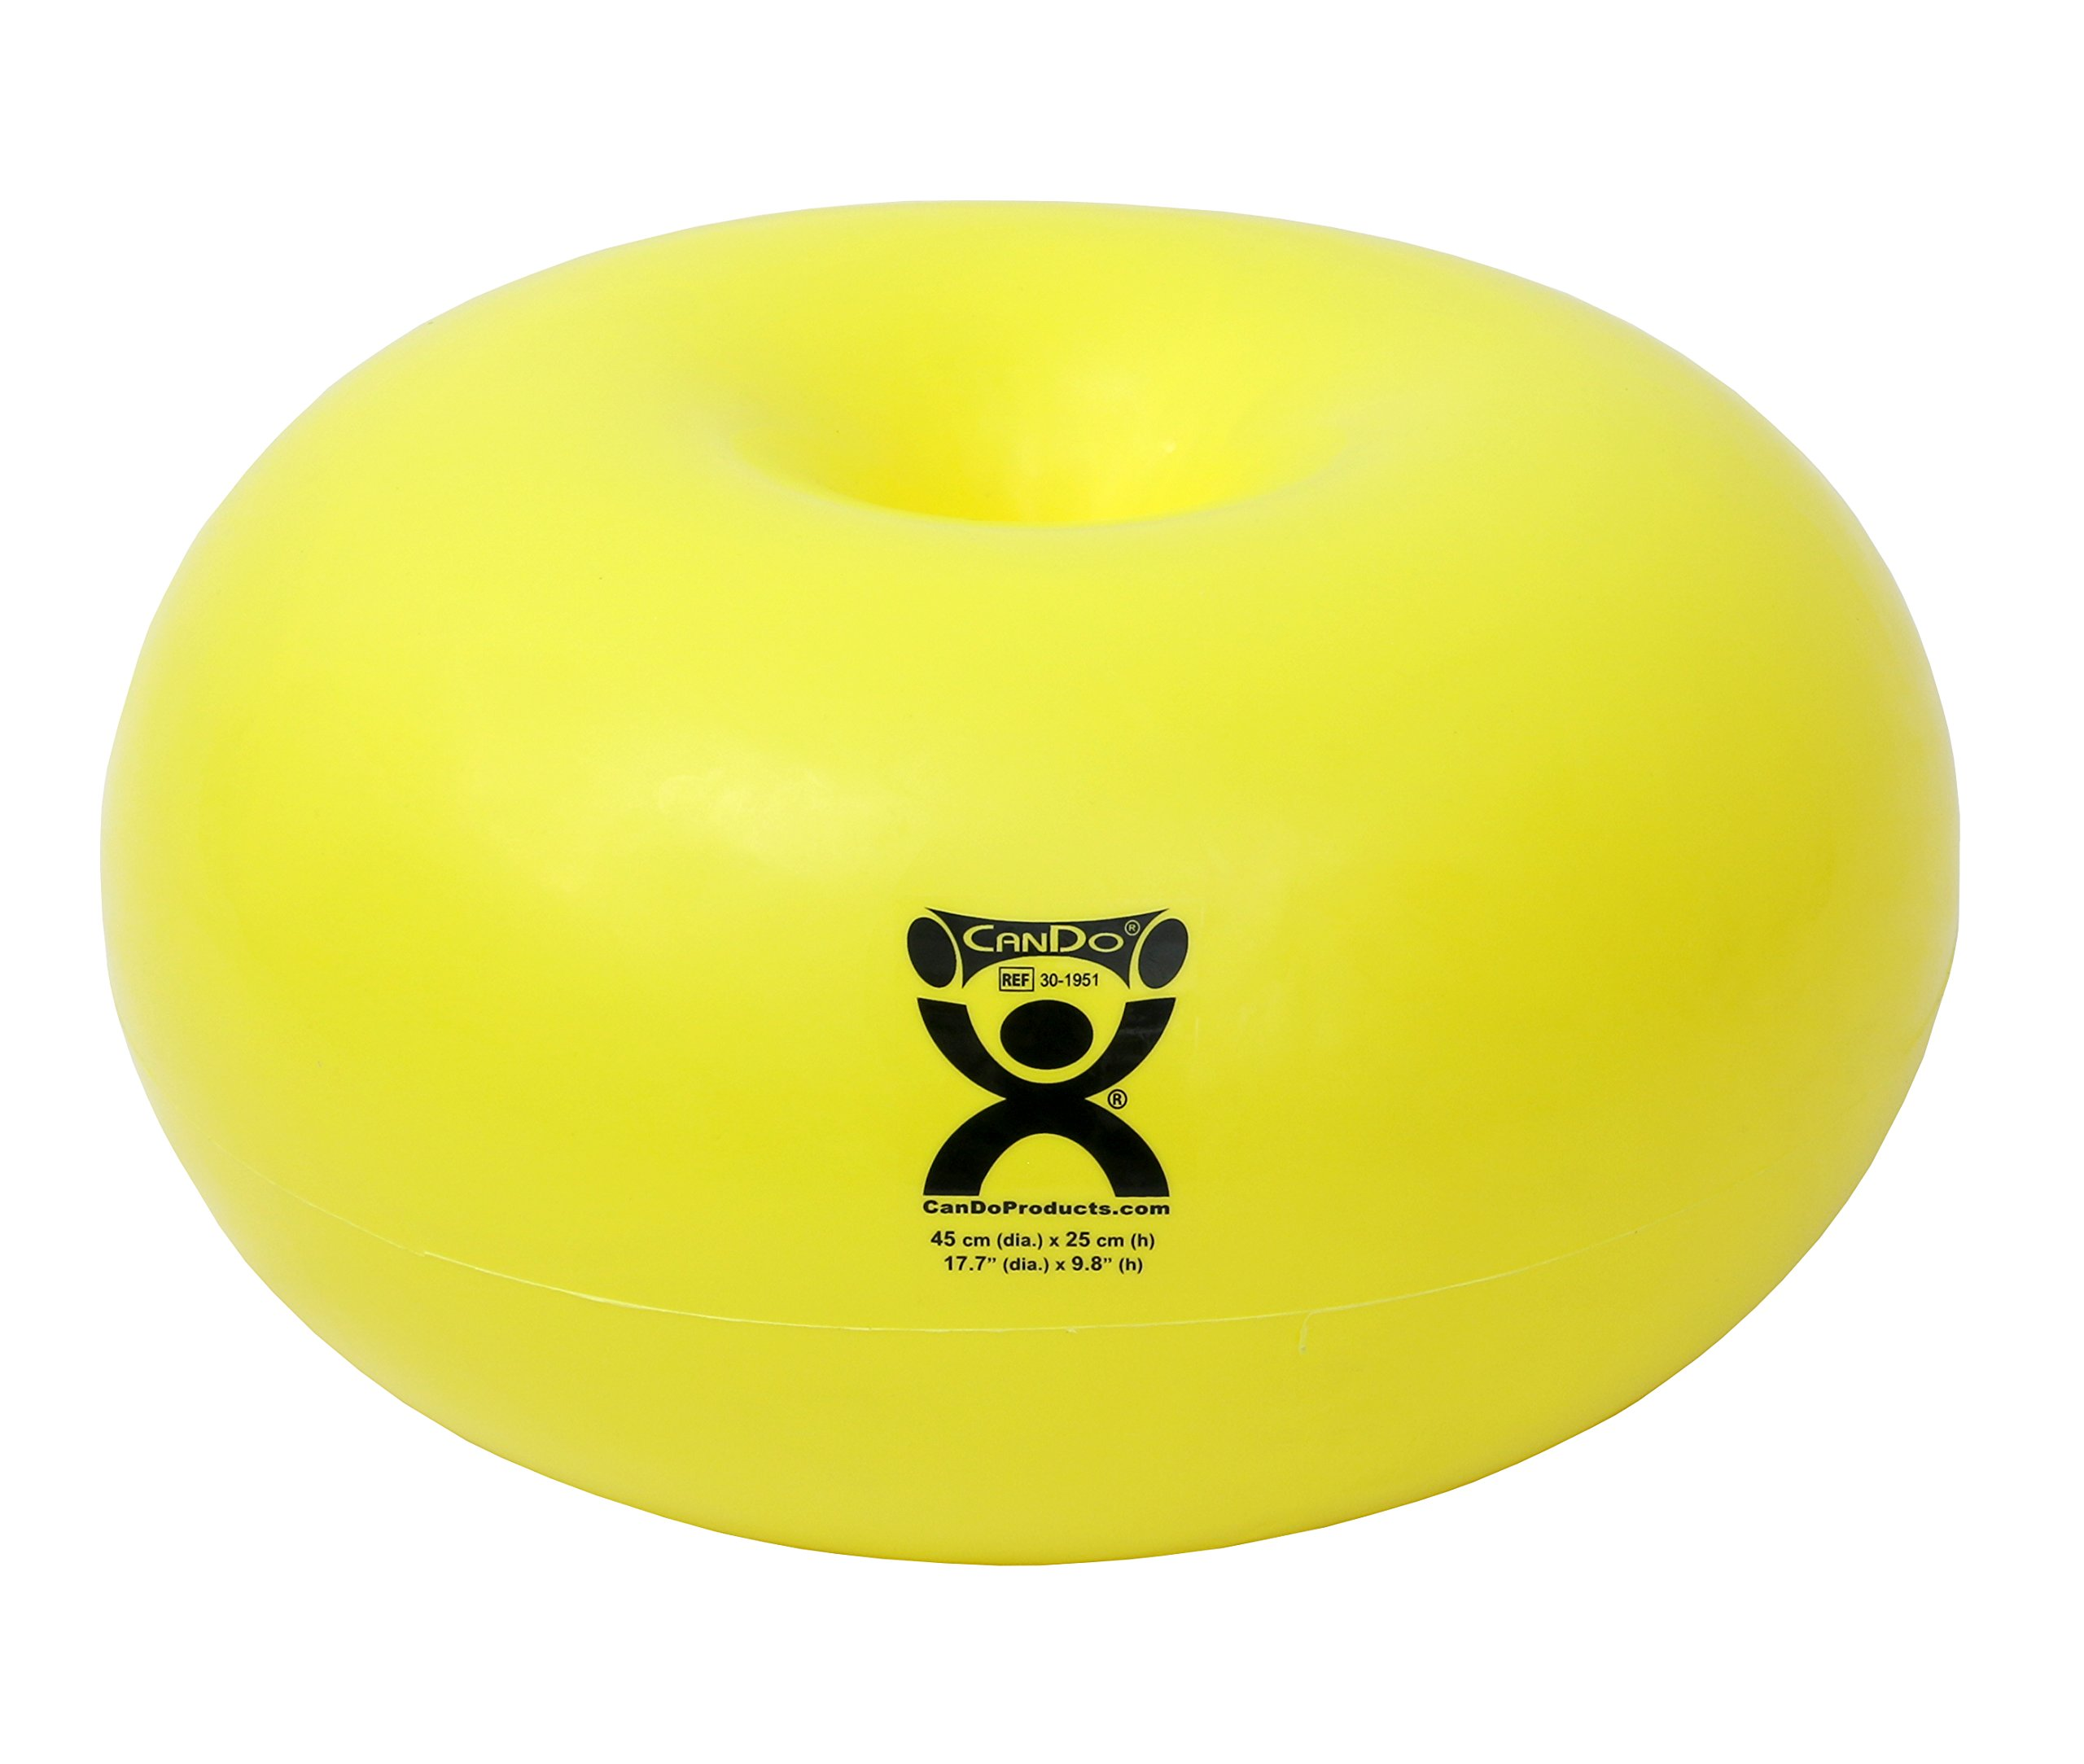 CanDo Donut Exercise, Workout, Core Training, Swiss Stability Ball for Yoga, Pilates and Balance Training in Gym, Office or Classroom. Yellow, 45 cm W x 25 cm by Cando